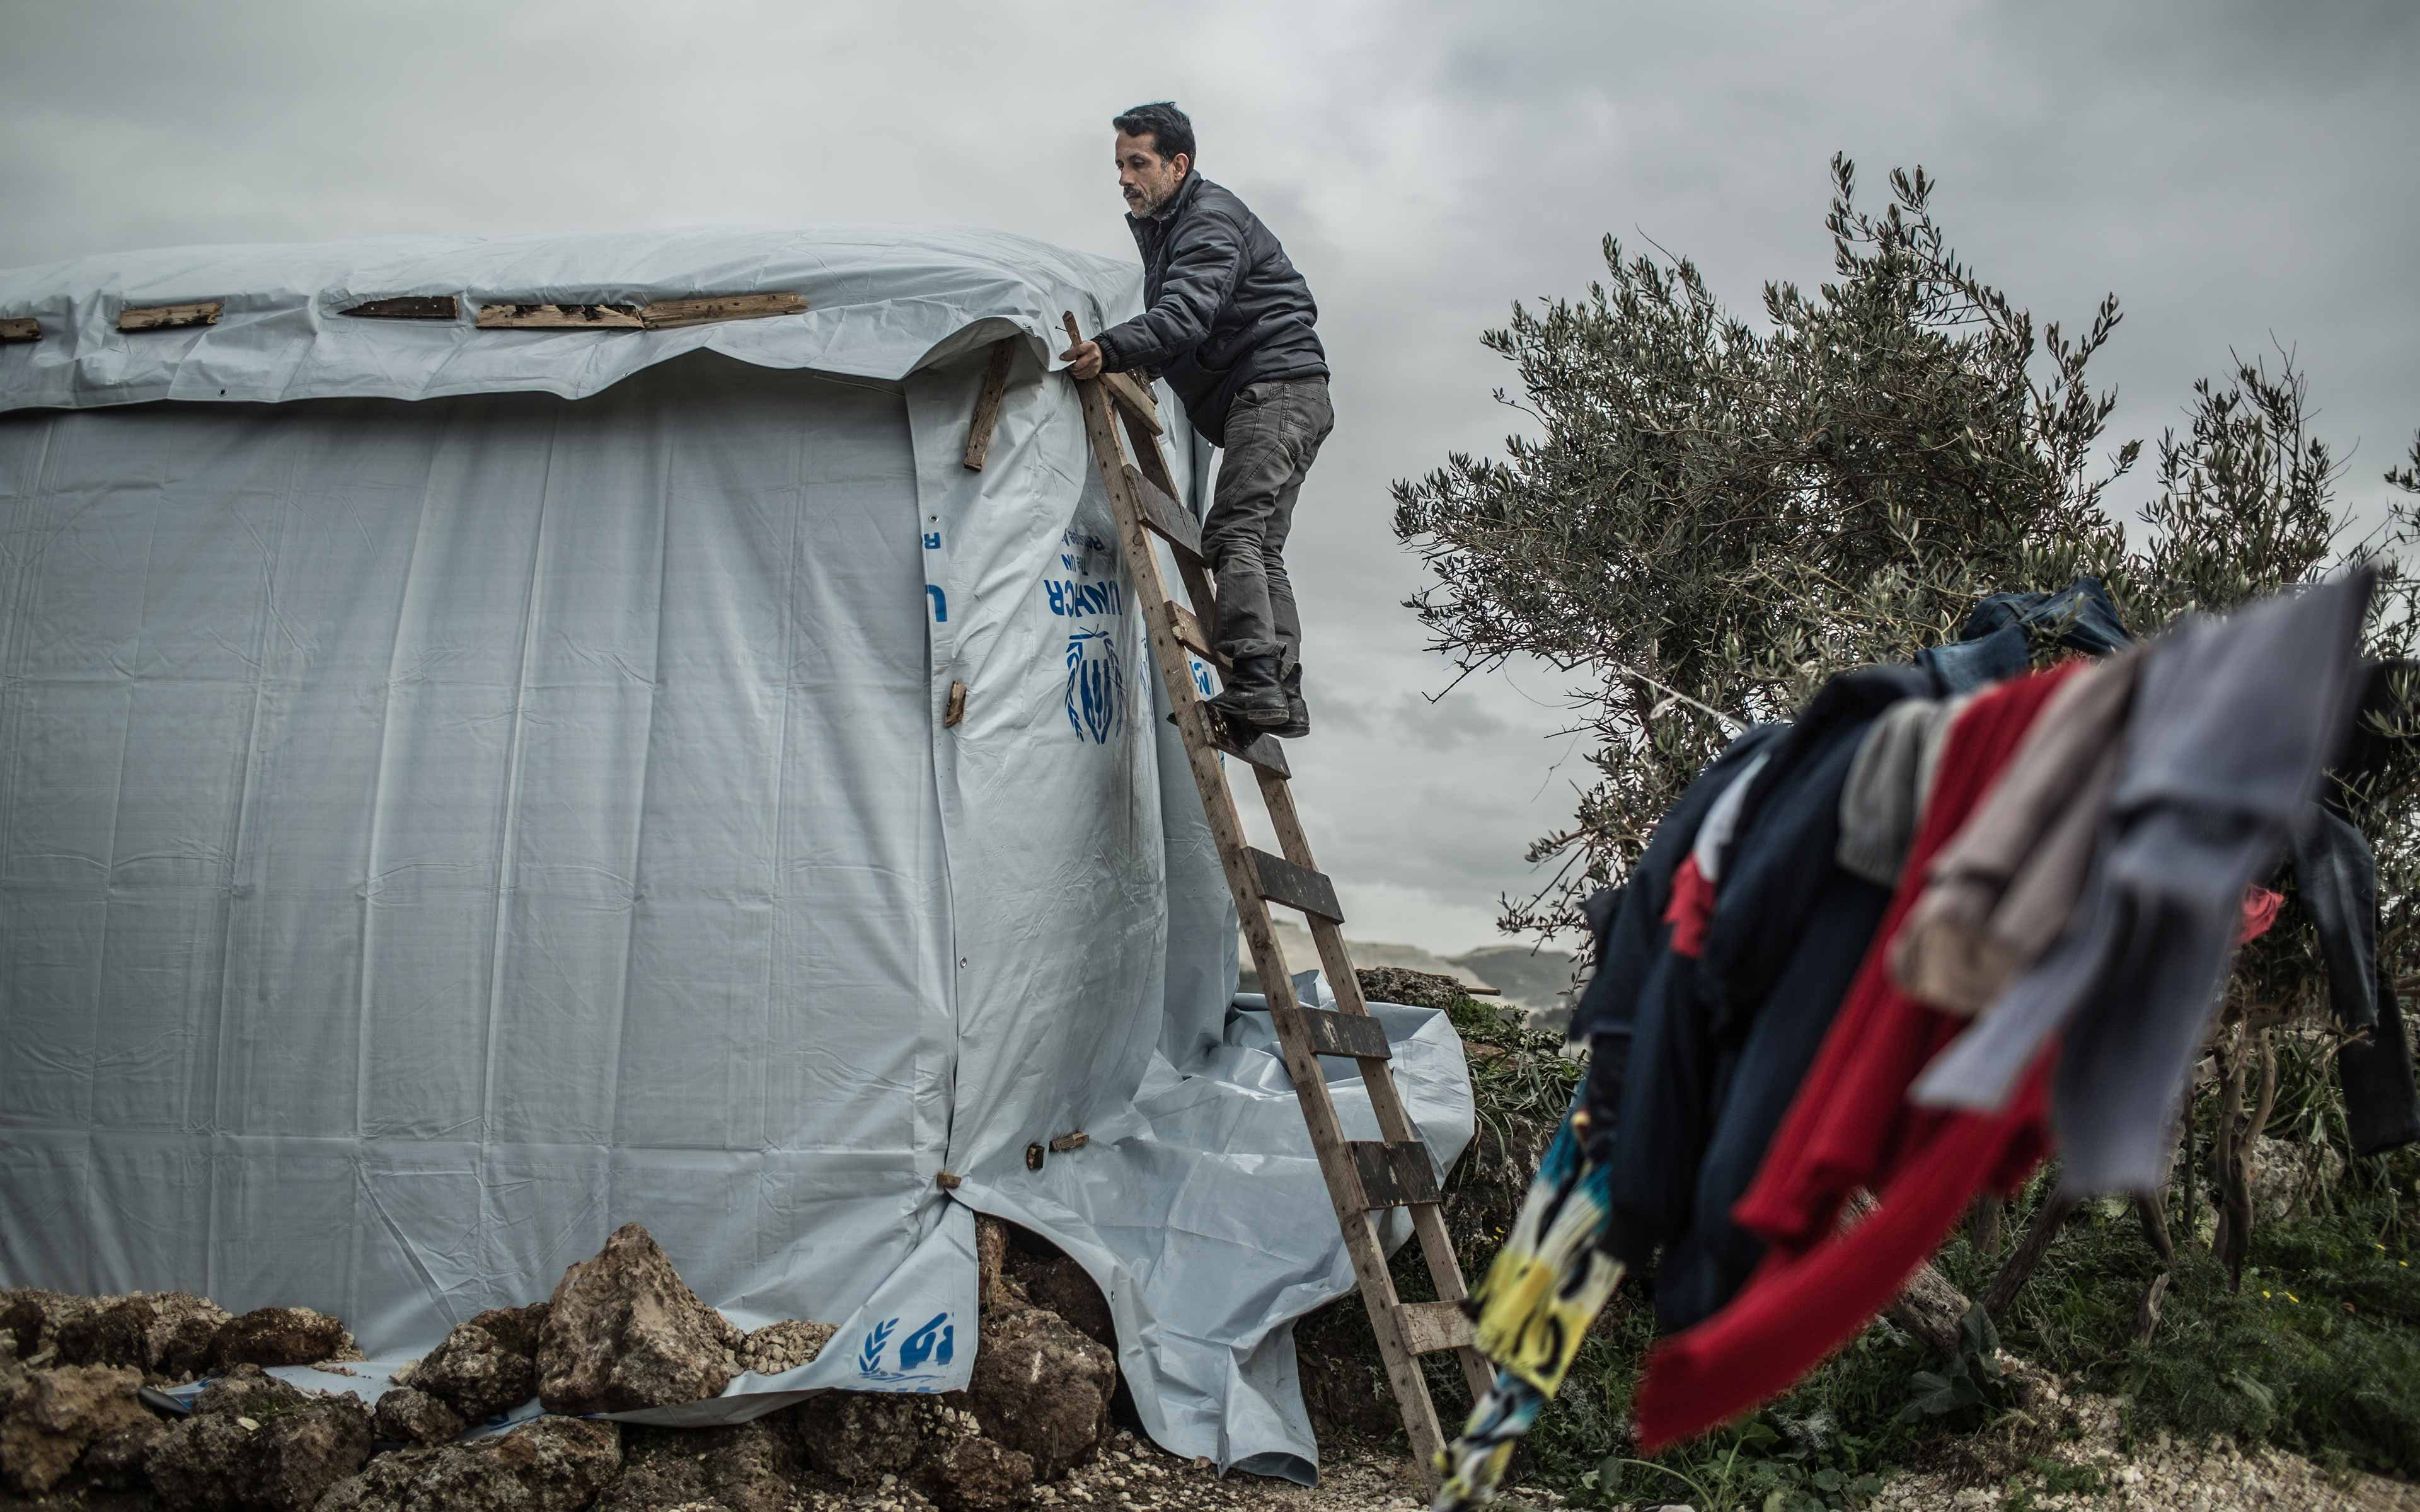 Ahmed works on a shelter made of wood and plastic sheeting in an informal settlement in northern Lebanon that is entirely dependent on humanitarian aid. He fled from Hasaka, Syria, with his family in 2012.